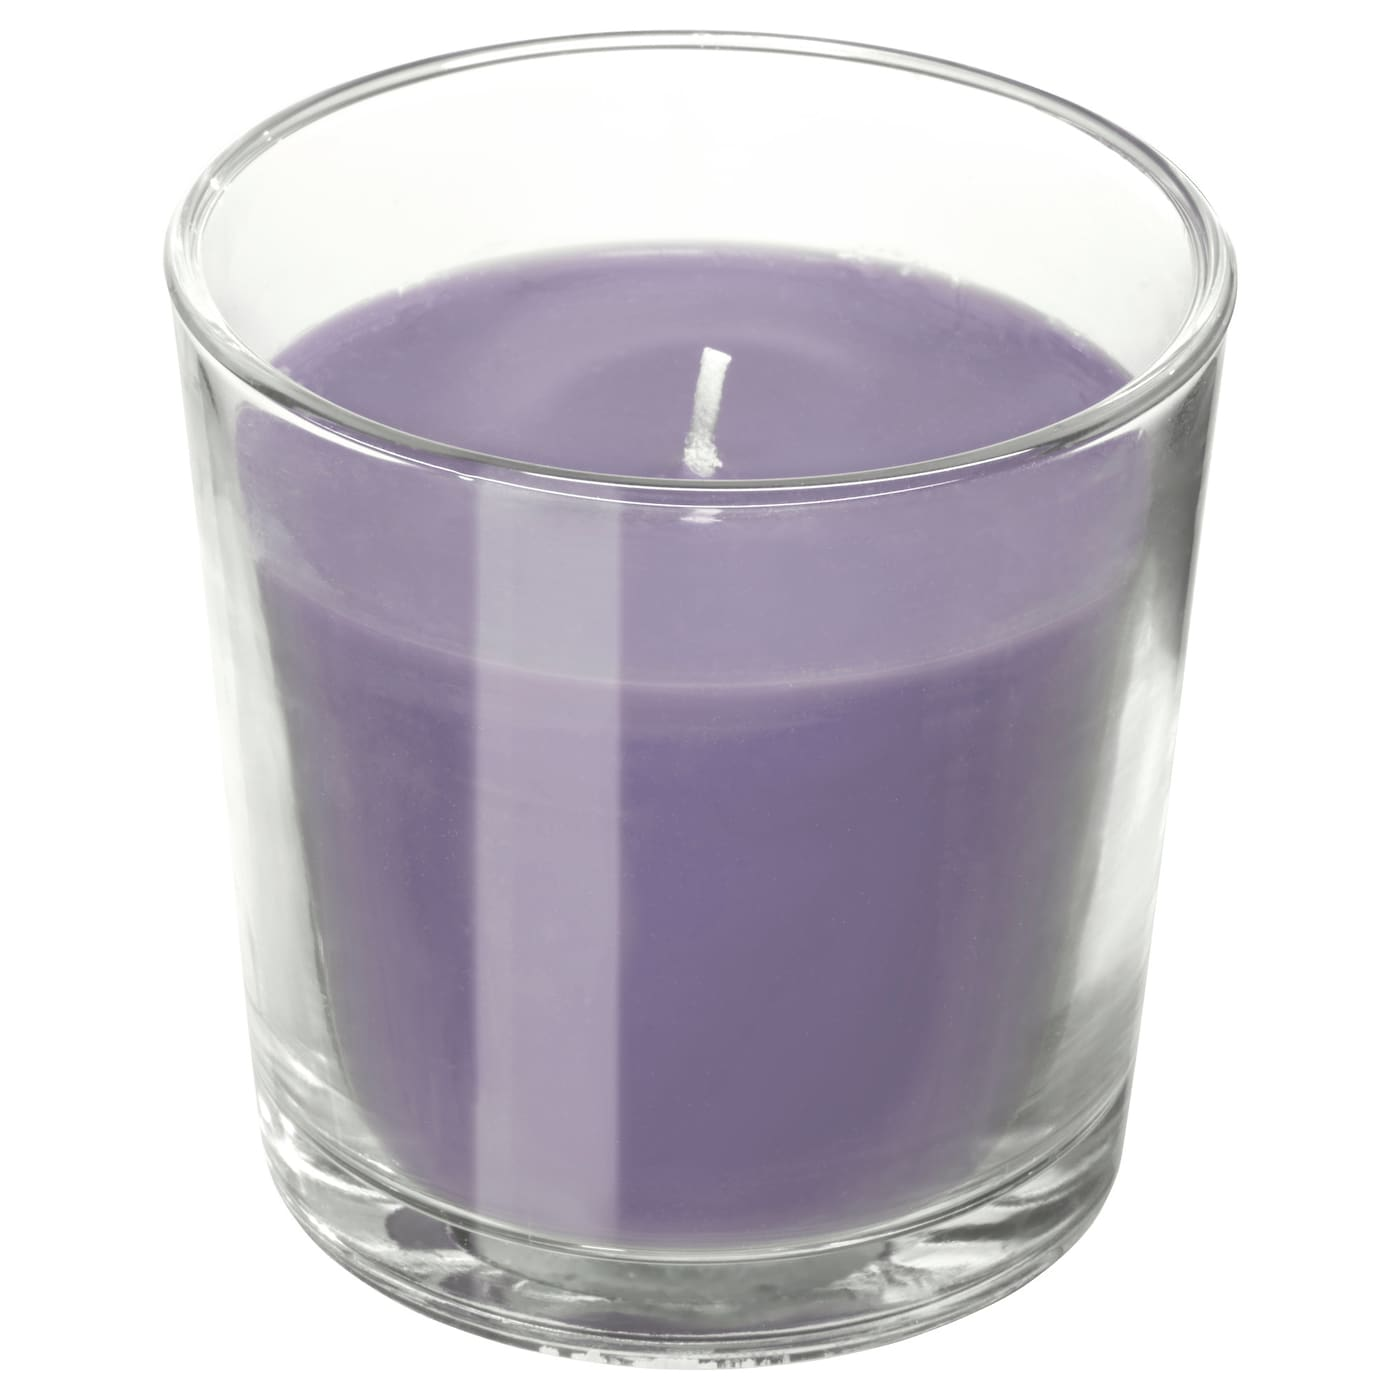 IKEA SINNLIG scented candle in glass Distinct scent of sweet blackberries with hints of mint.